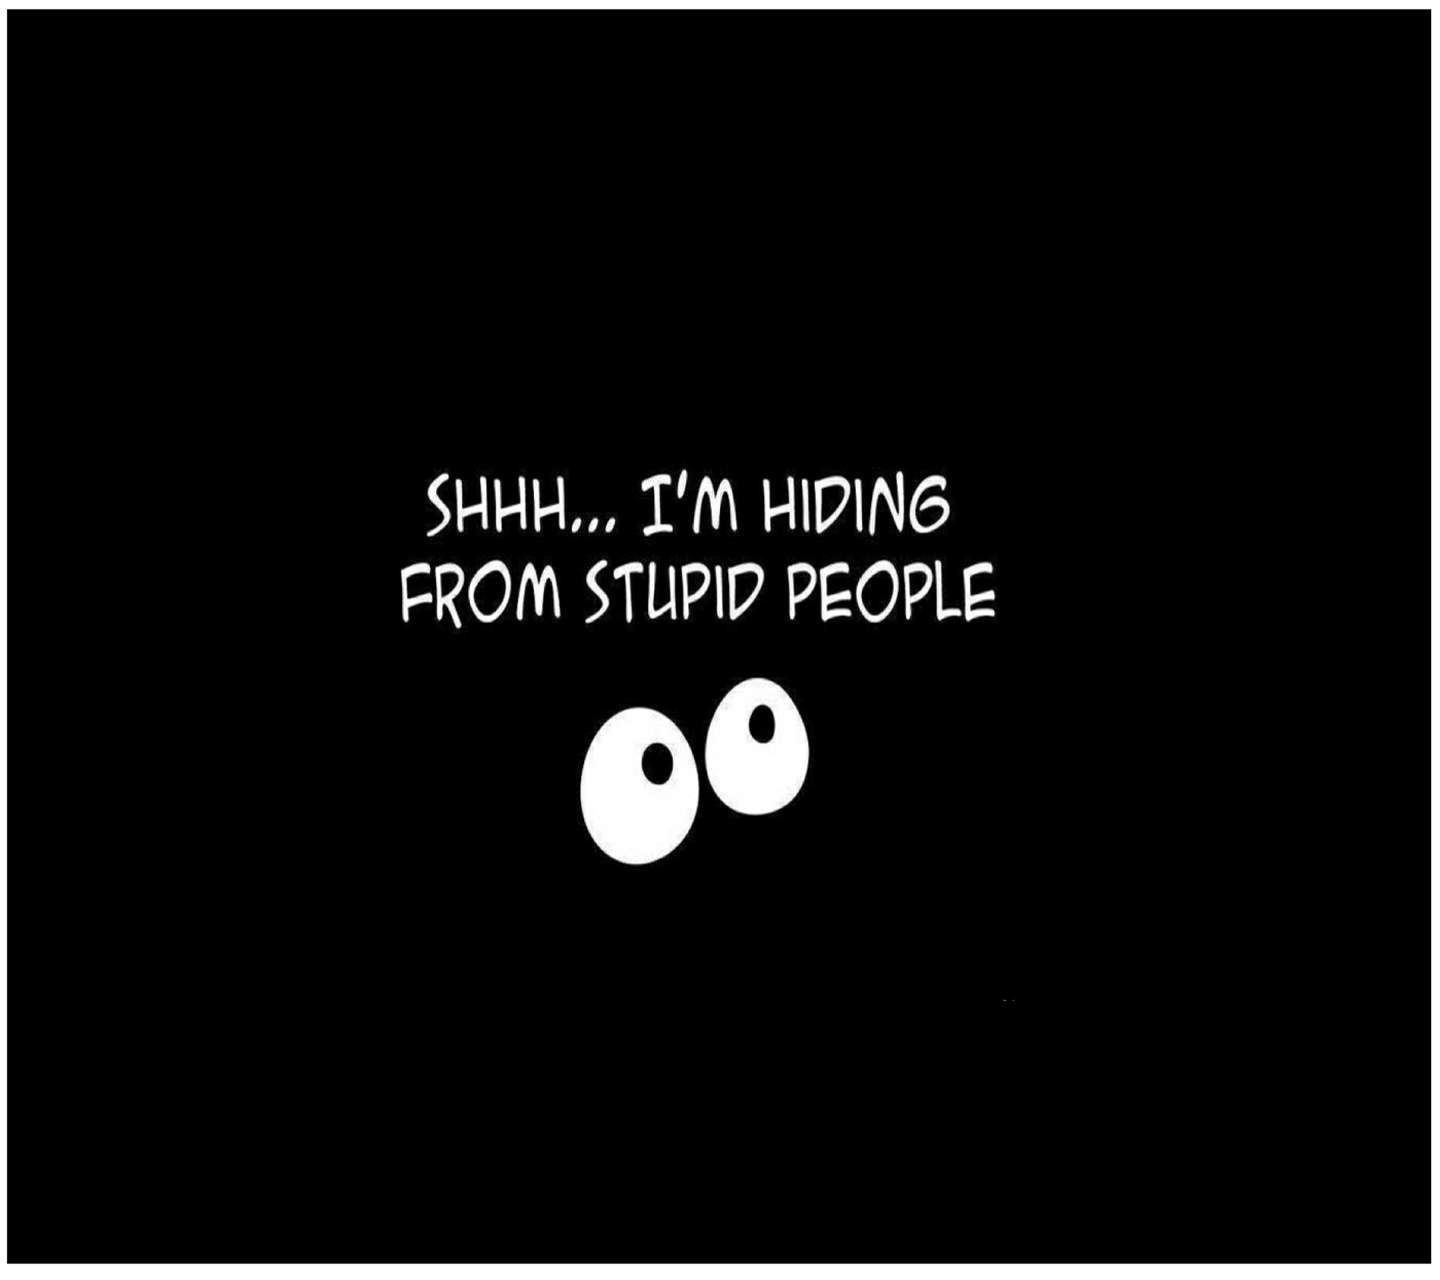 Pin By M Simmons On Miscellaneous Friendship Quotes Funny Funny Quotes Stupid People